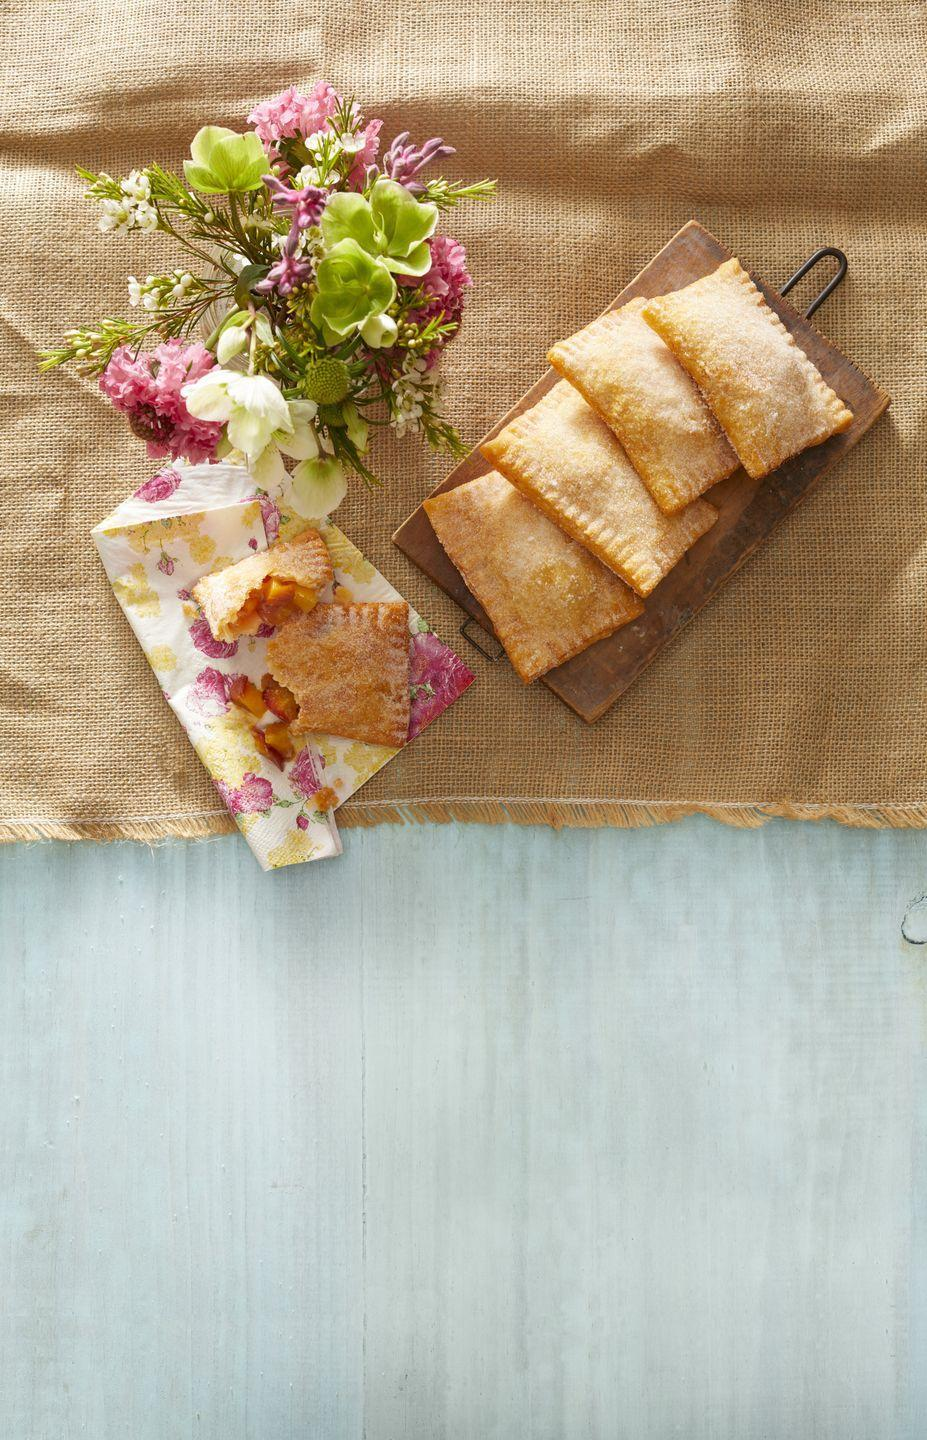 """<p>Ree's peach hand pies are just the cutest summer dessert. The ground ginger gives them a delicious extra kick too. </p><p><a href=""""https://www.thepioneerwoman.com/food-cooking/recipes/a32097059/fried-peach-ginger-hand-pies-recipe/"""" rel=""""nofollow noopener"""" target=""""_blank"""" data-ylk=""""slk:Get Ree's recipe."""" class=""""link rapid-noclick-resp""""><strong>Get Ree's recipe</strong>. </a> </p><p><a class=""""link rapid-noclick-resp"""" href=""""https://go.redirectingat.com?id=74968X1596630&url=https%3A%2F%2Fwww.walmart.com%2Fsearch%2F%3Fquery%3Dpioneer%2Bwoman%2Bserving%2Bplates&sref=https%3A%2F%2Fwww.thepioneerwoman.com%2Ffood-cooking%2Frecipes%2Fg36382592%2Fpeach-desserts%2F"""" rel=""""nofollow noopener"""" target=""""_blank"""" data-ylk=""""slk:SHOP SERVING PLATES"""">SHOP SERVING PLATES</a></p>"""